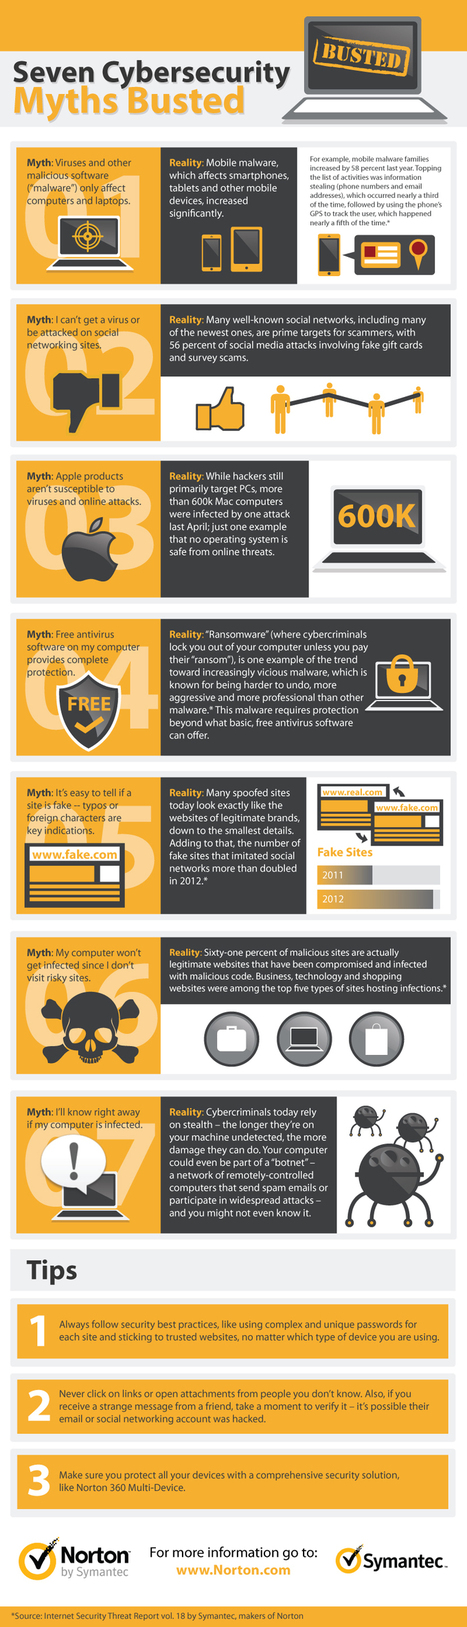 7 Cybersecurity Myths Busted [Infographic] | digital marketing strategy | Scoop.it